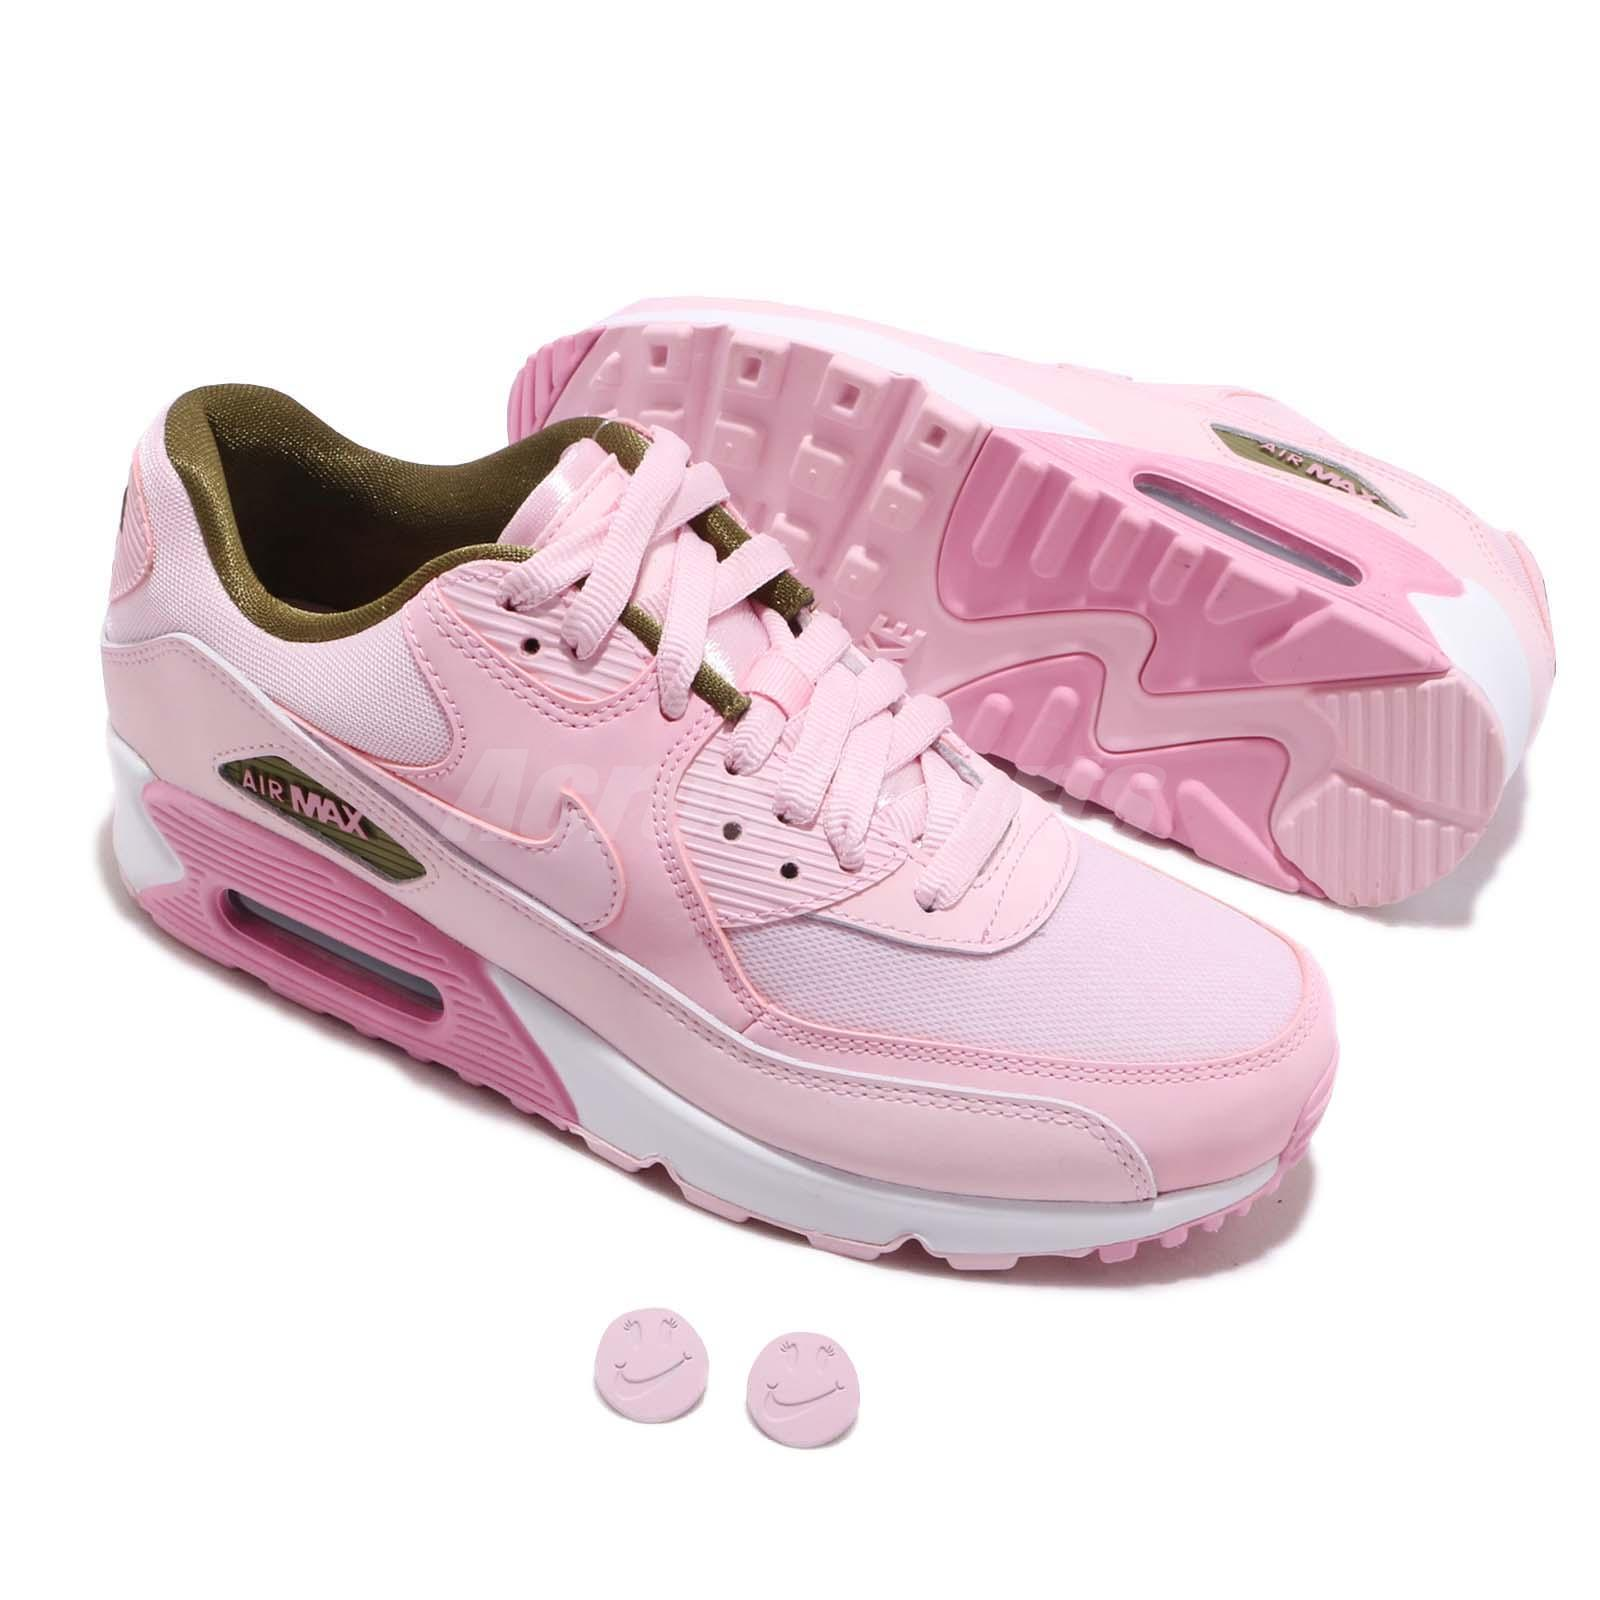 Details about Nike Wmns Air Max 90 SE Have A Nike Day Pink Women Shoes Sneakers 881105 605